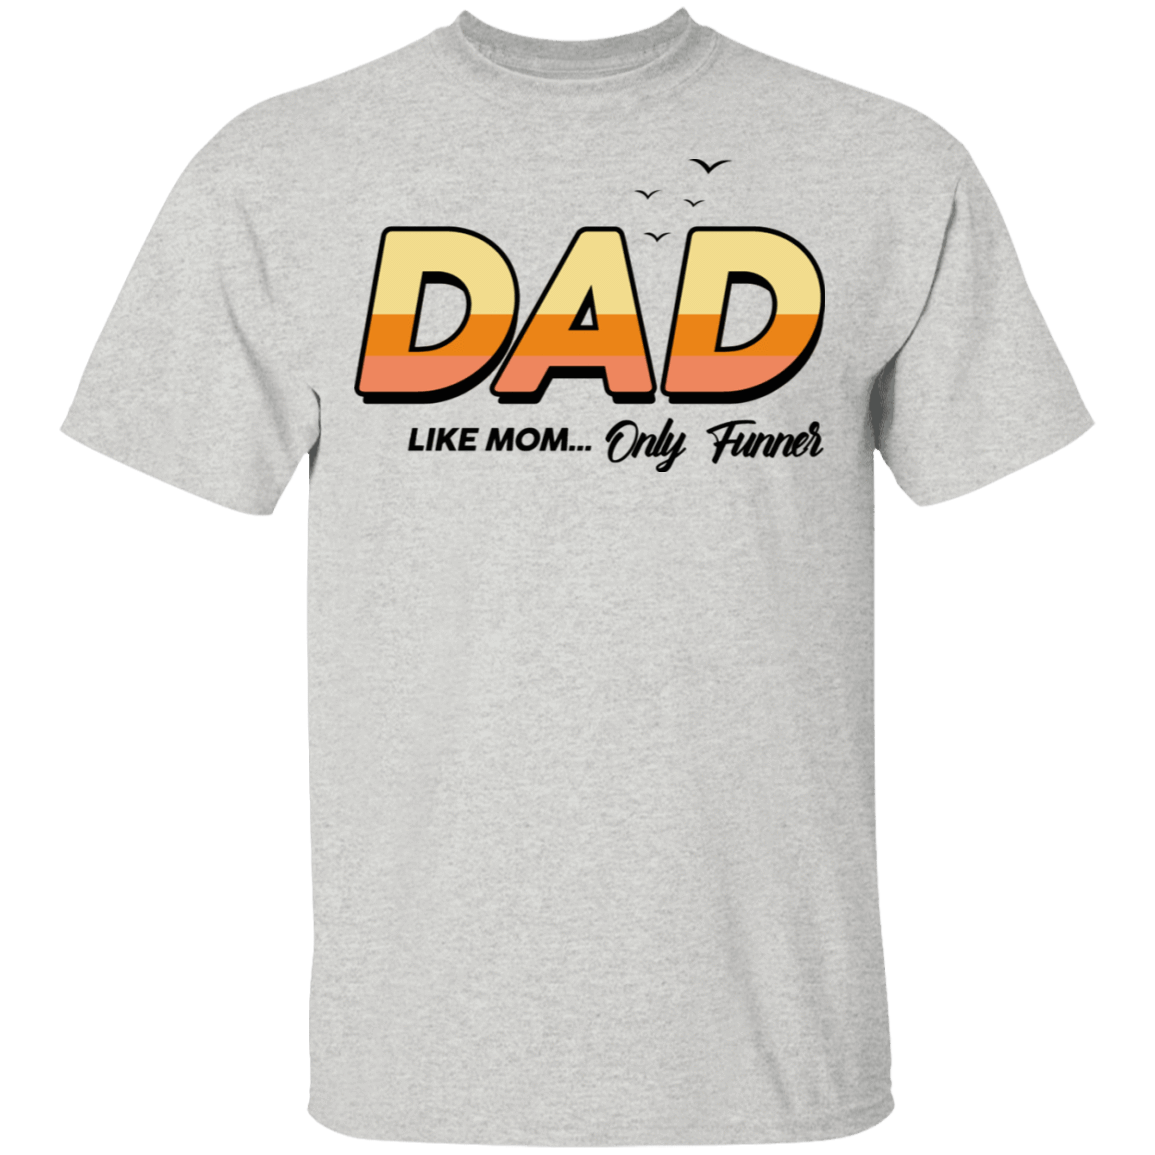 Dad Like Mom ... Only Funner T-Shirts, Hoodies, Tank 22-2475-79999096-12568 - Tee Ript